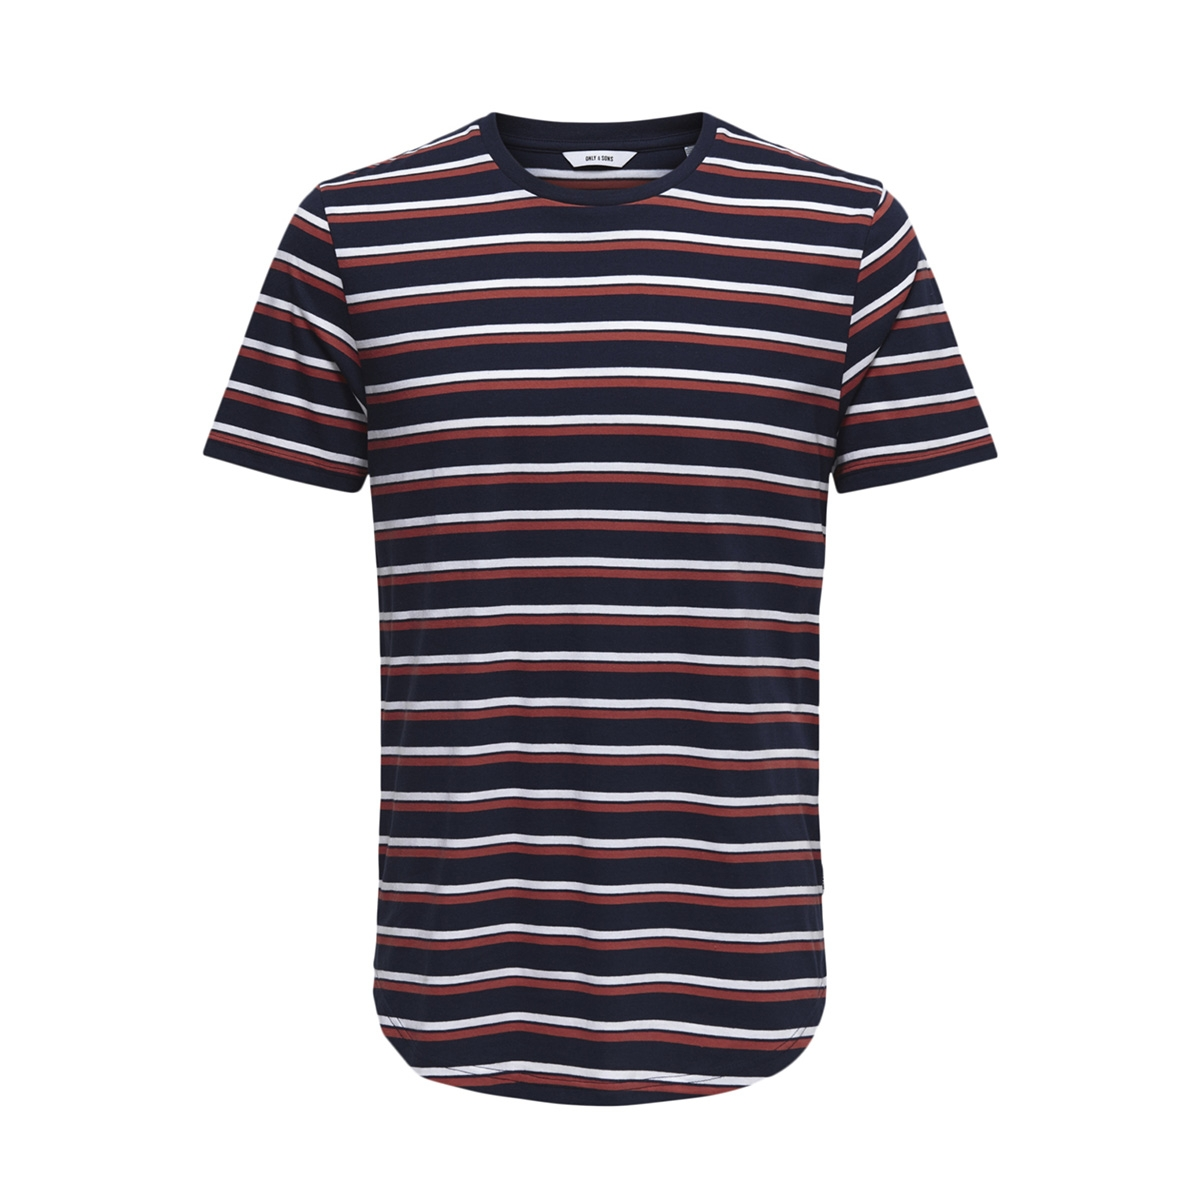 onspalatine ss longy tee 22013137 only & sons t-shirt dress blues